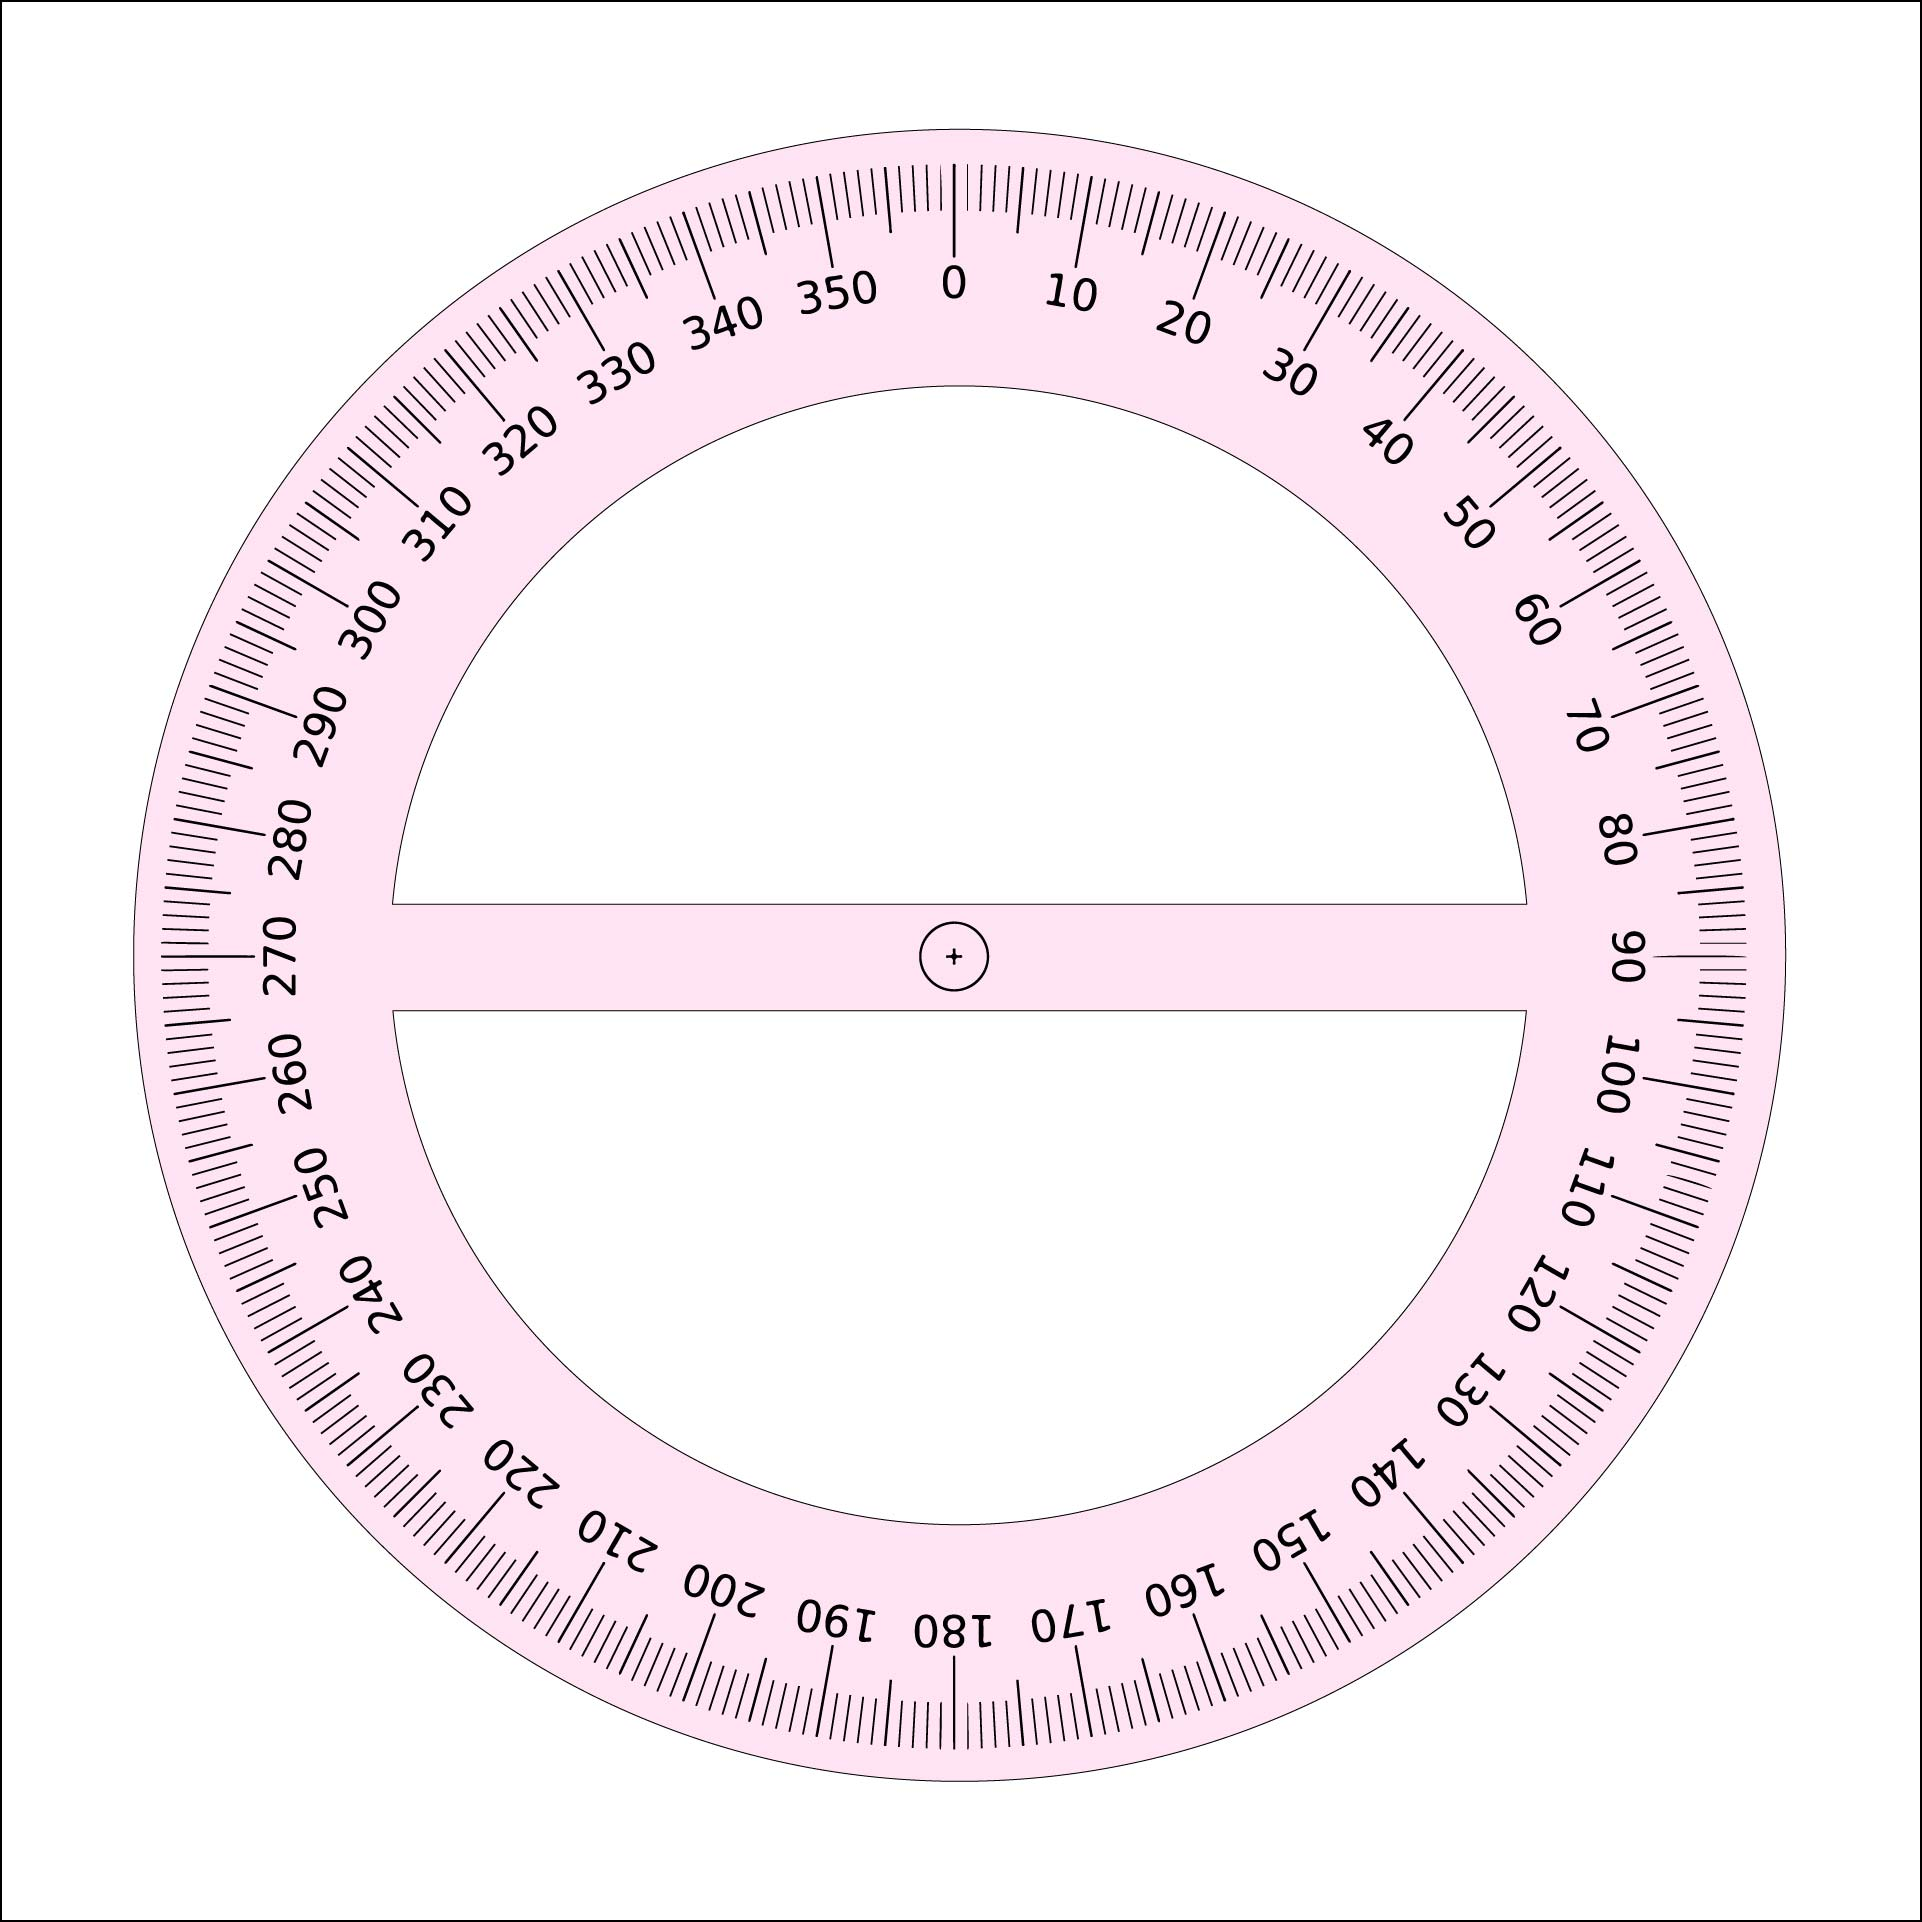 It's just an image of Playful Printable Degree Wheel